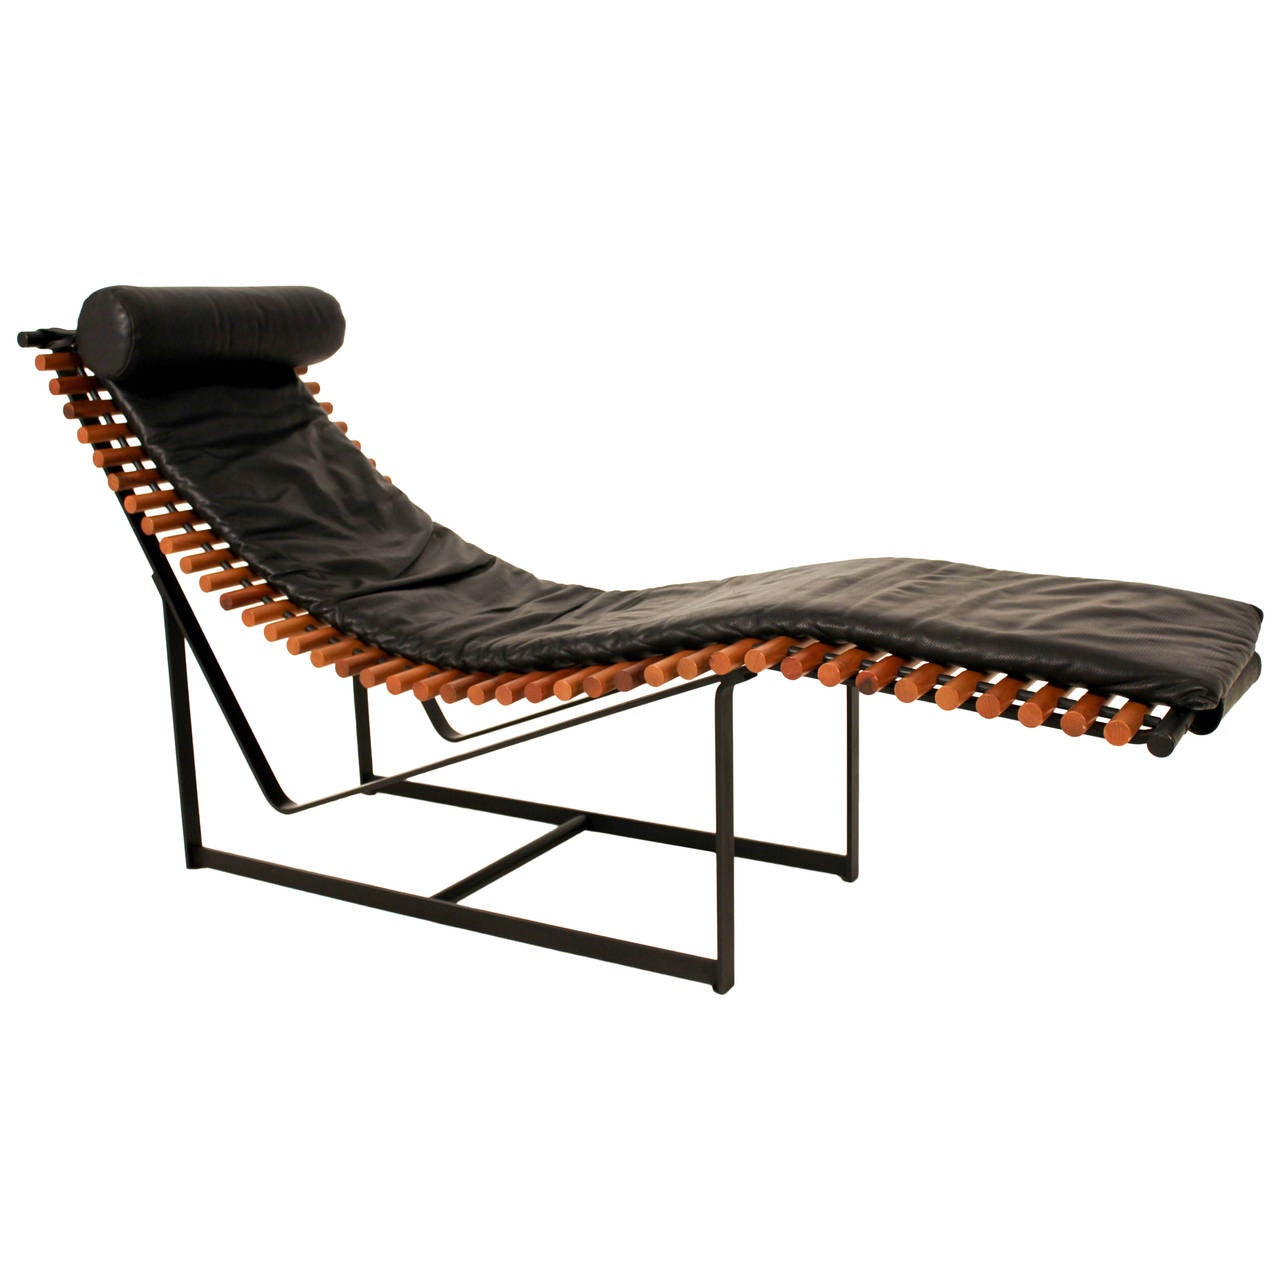 funky mid century modern chaise longue 1970s for sale at. Black Bedroom Furniture Sets. Home Design Ideas